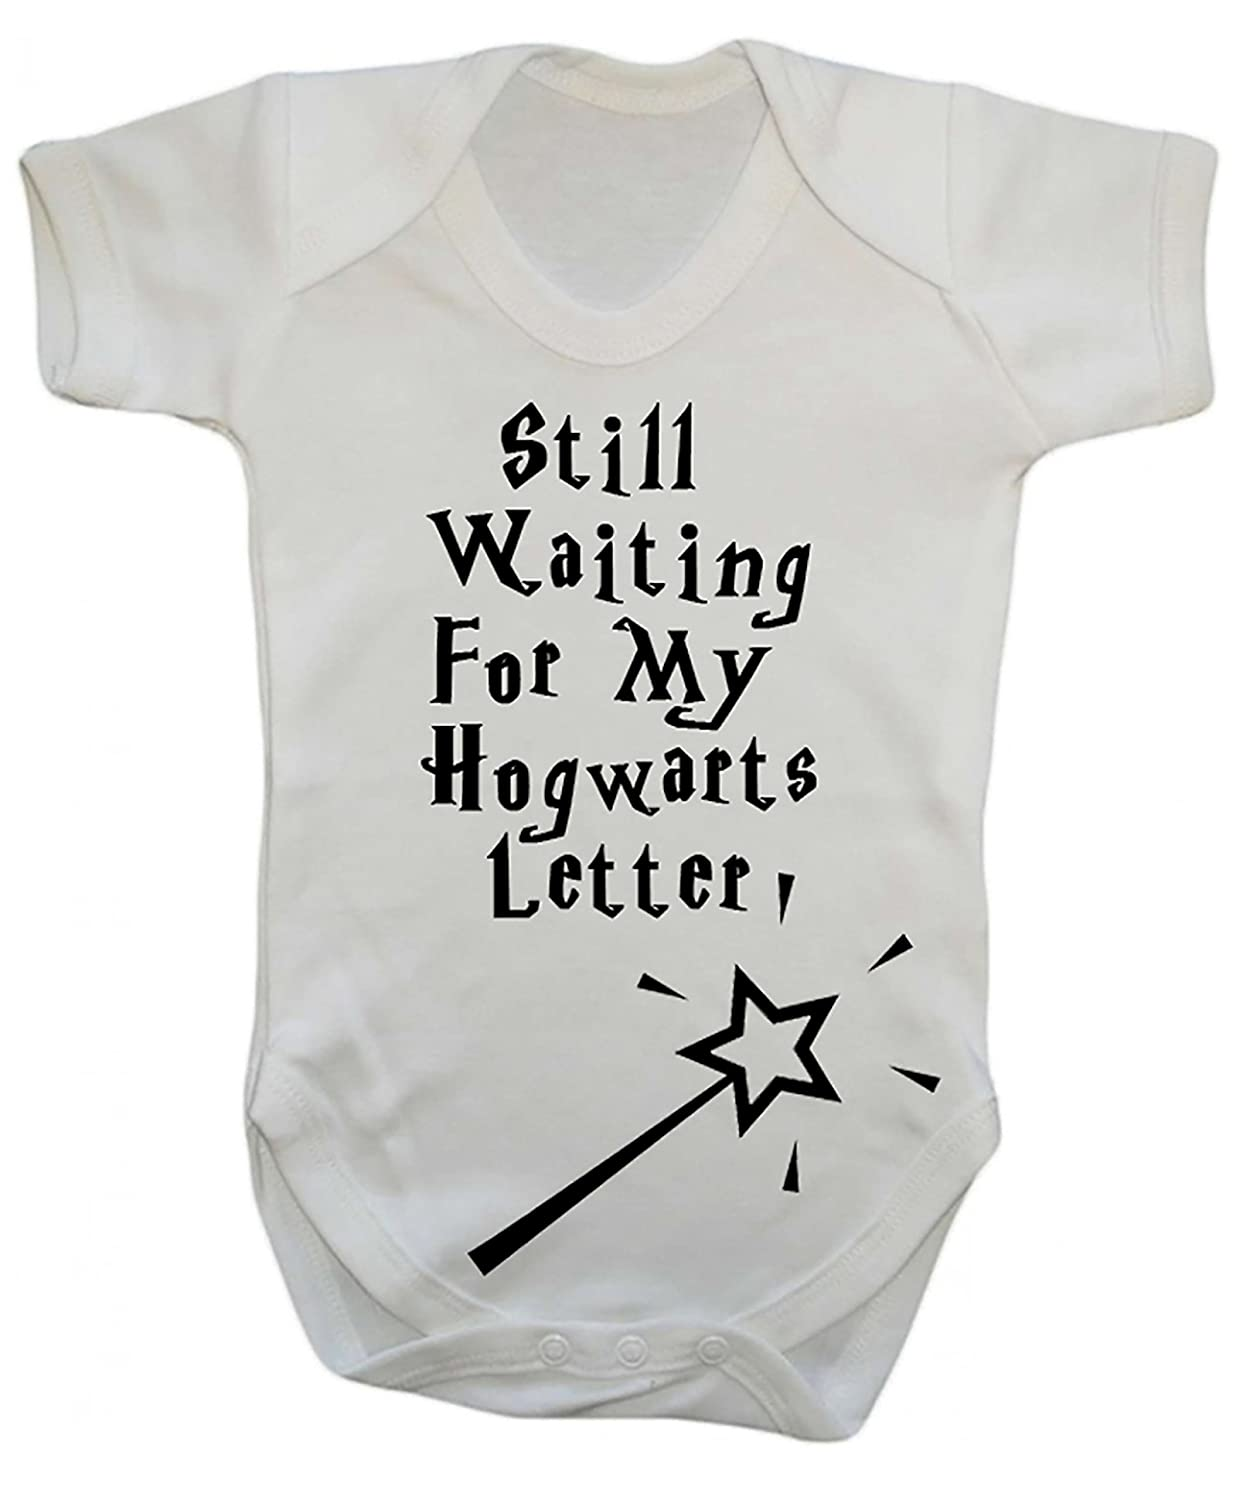 1c7b764b6 Funny Harry Potter Hogwarts Babygrow (Newborn)  Amazon.co.uk  Baby